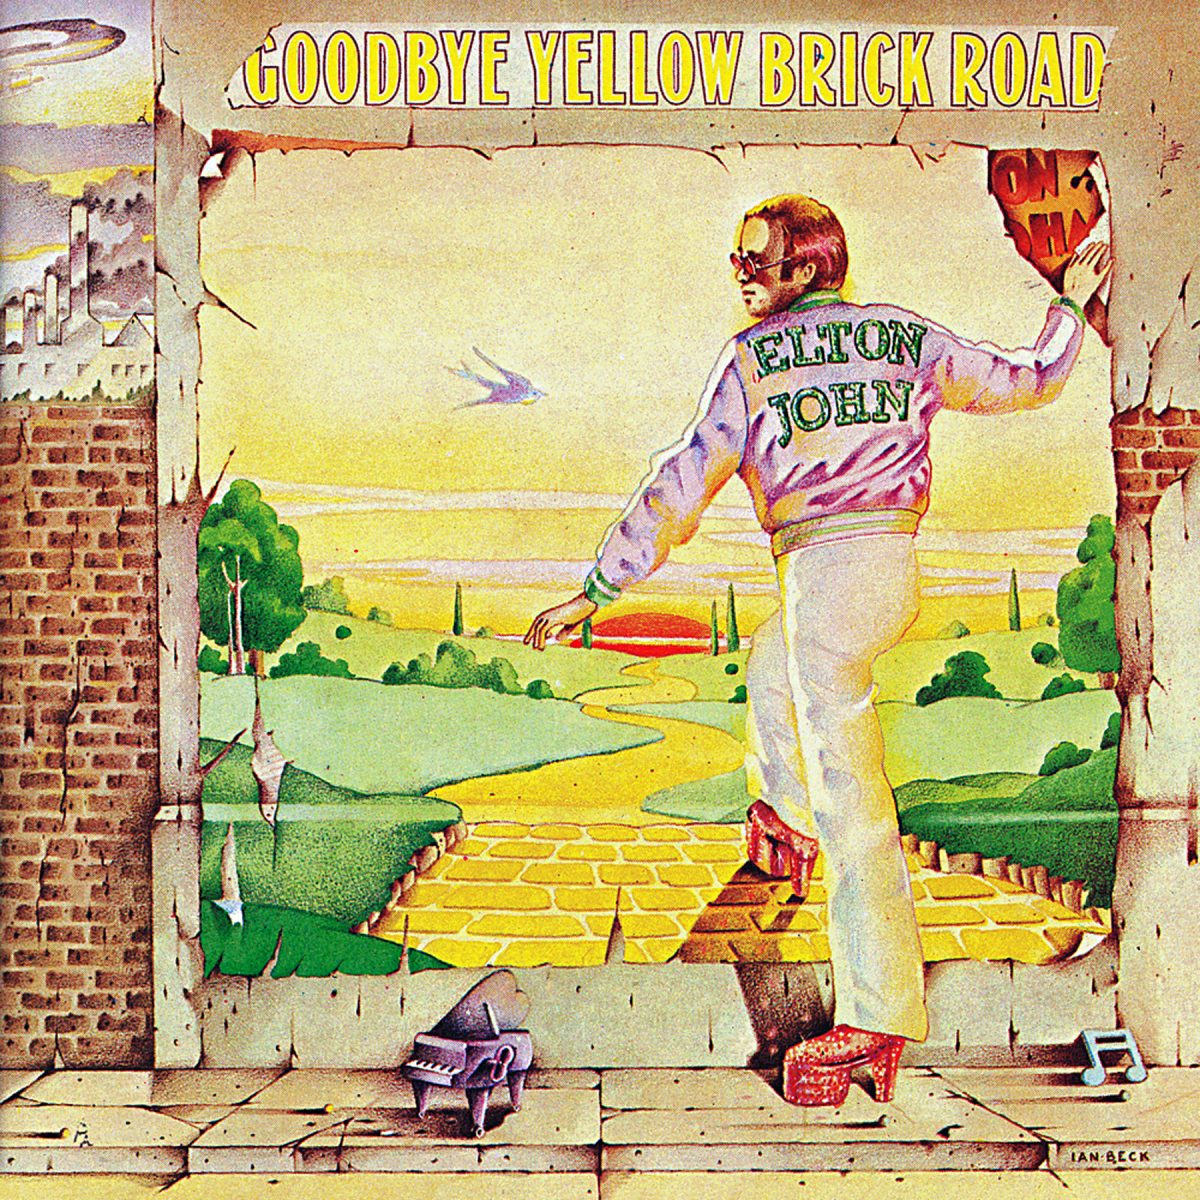 Goodbye-Yellow-Brick-Road-by-Elton-John